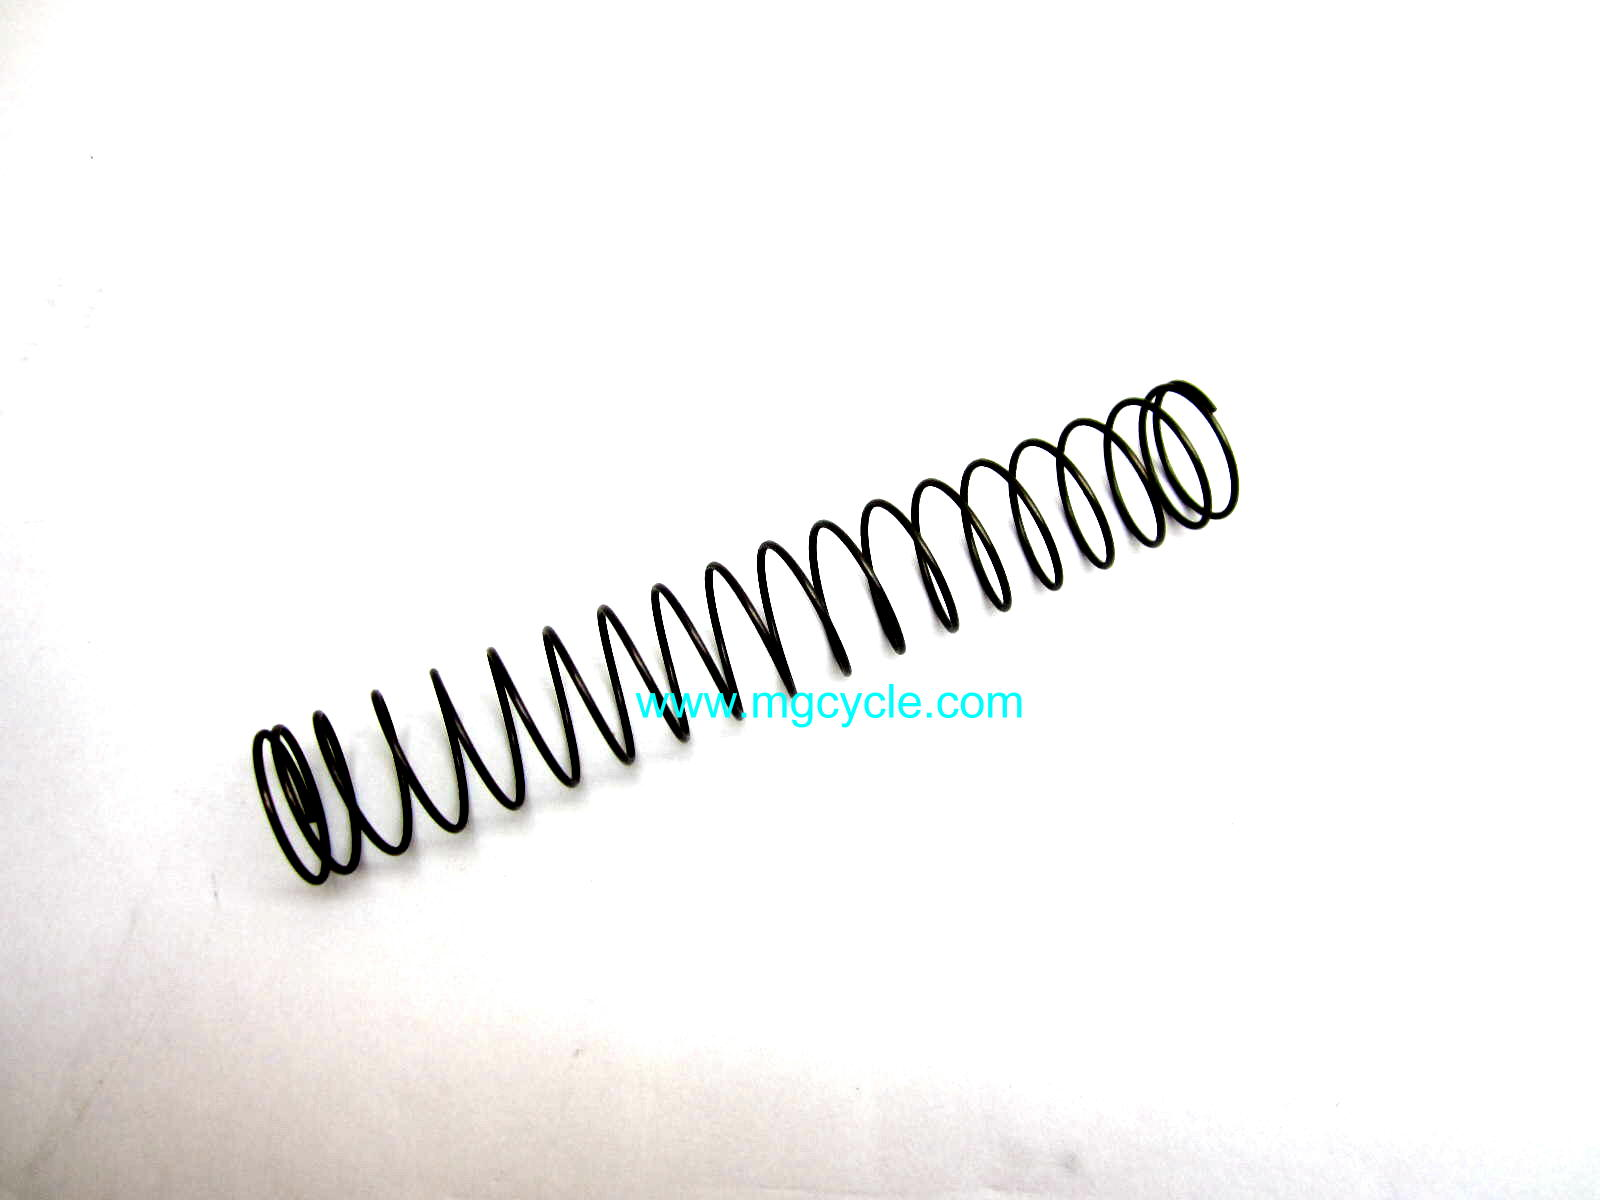 Dellorto 8550 lightest throttle spring for PHF-PHM 0.7a70mm